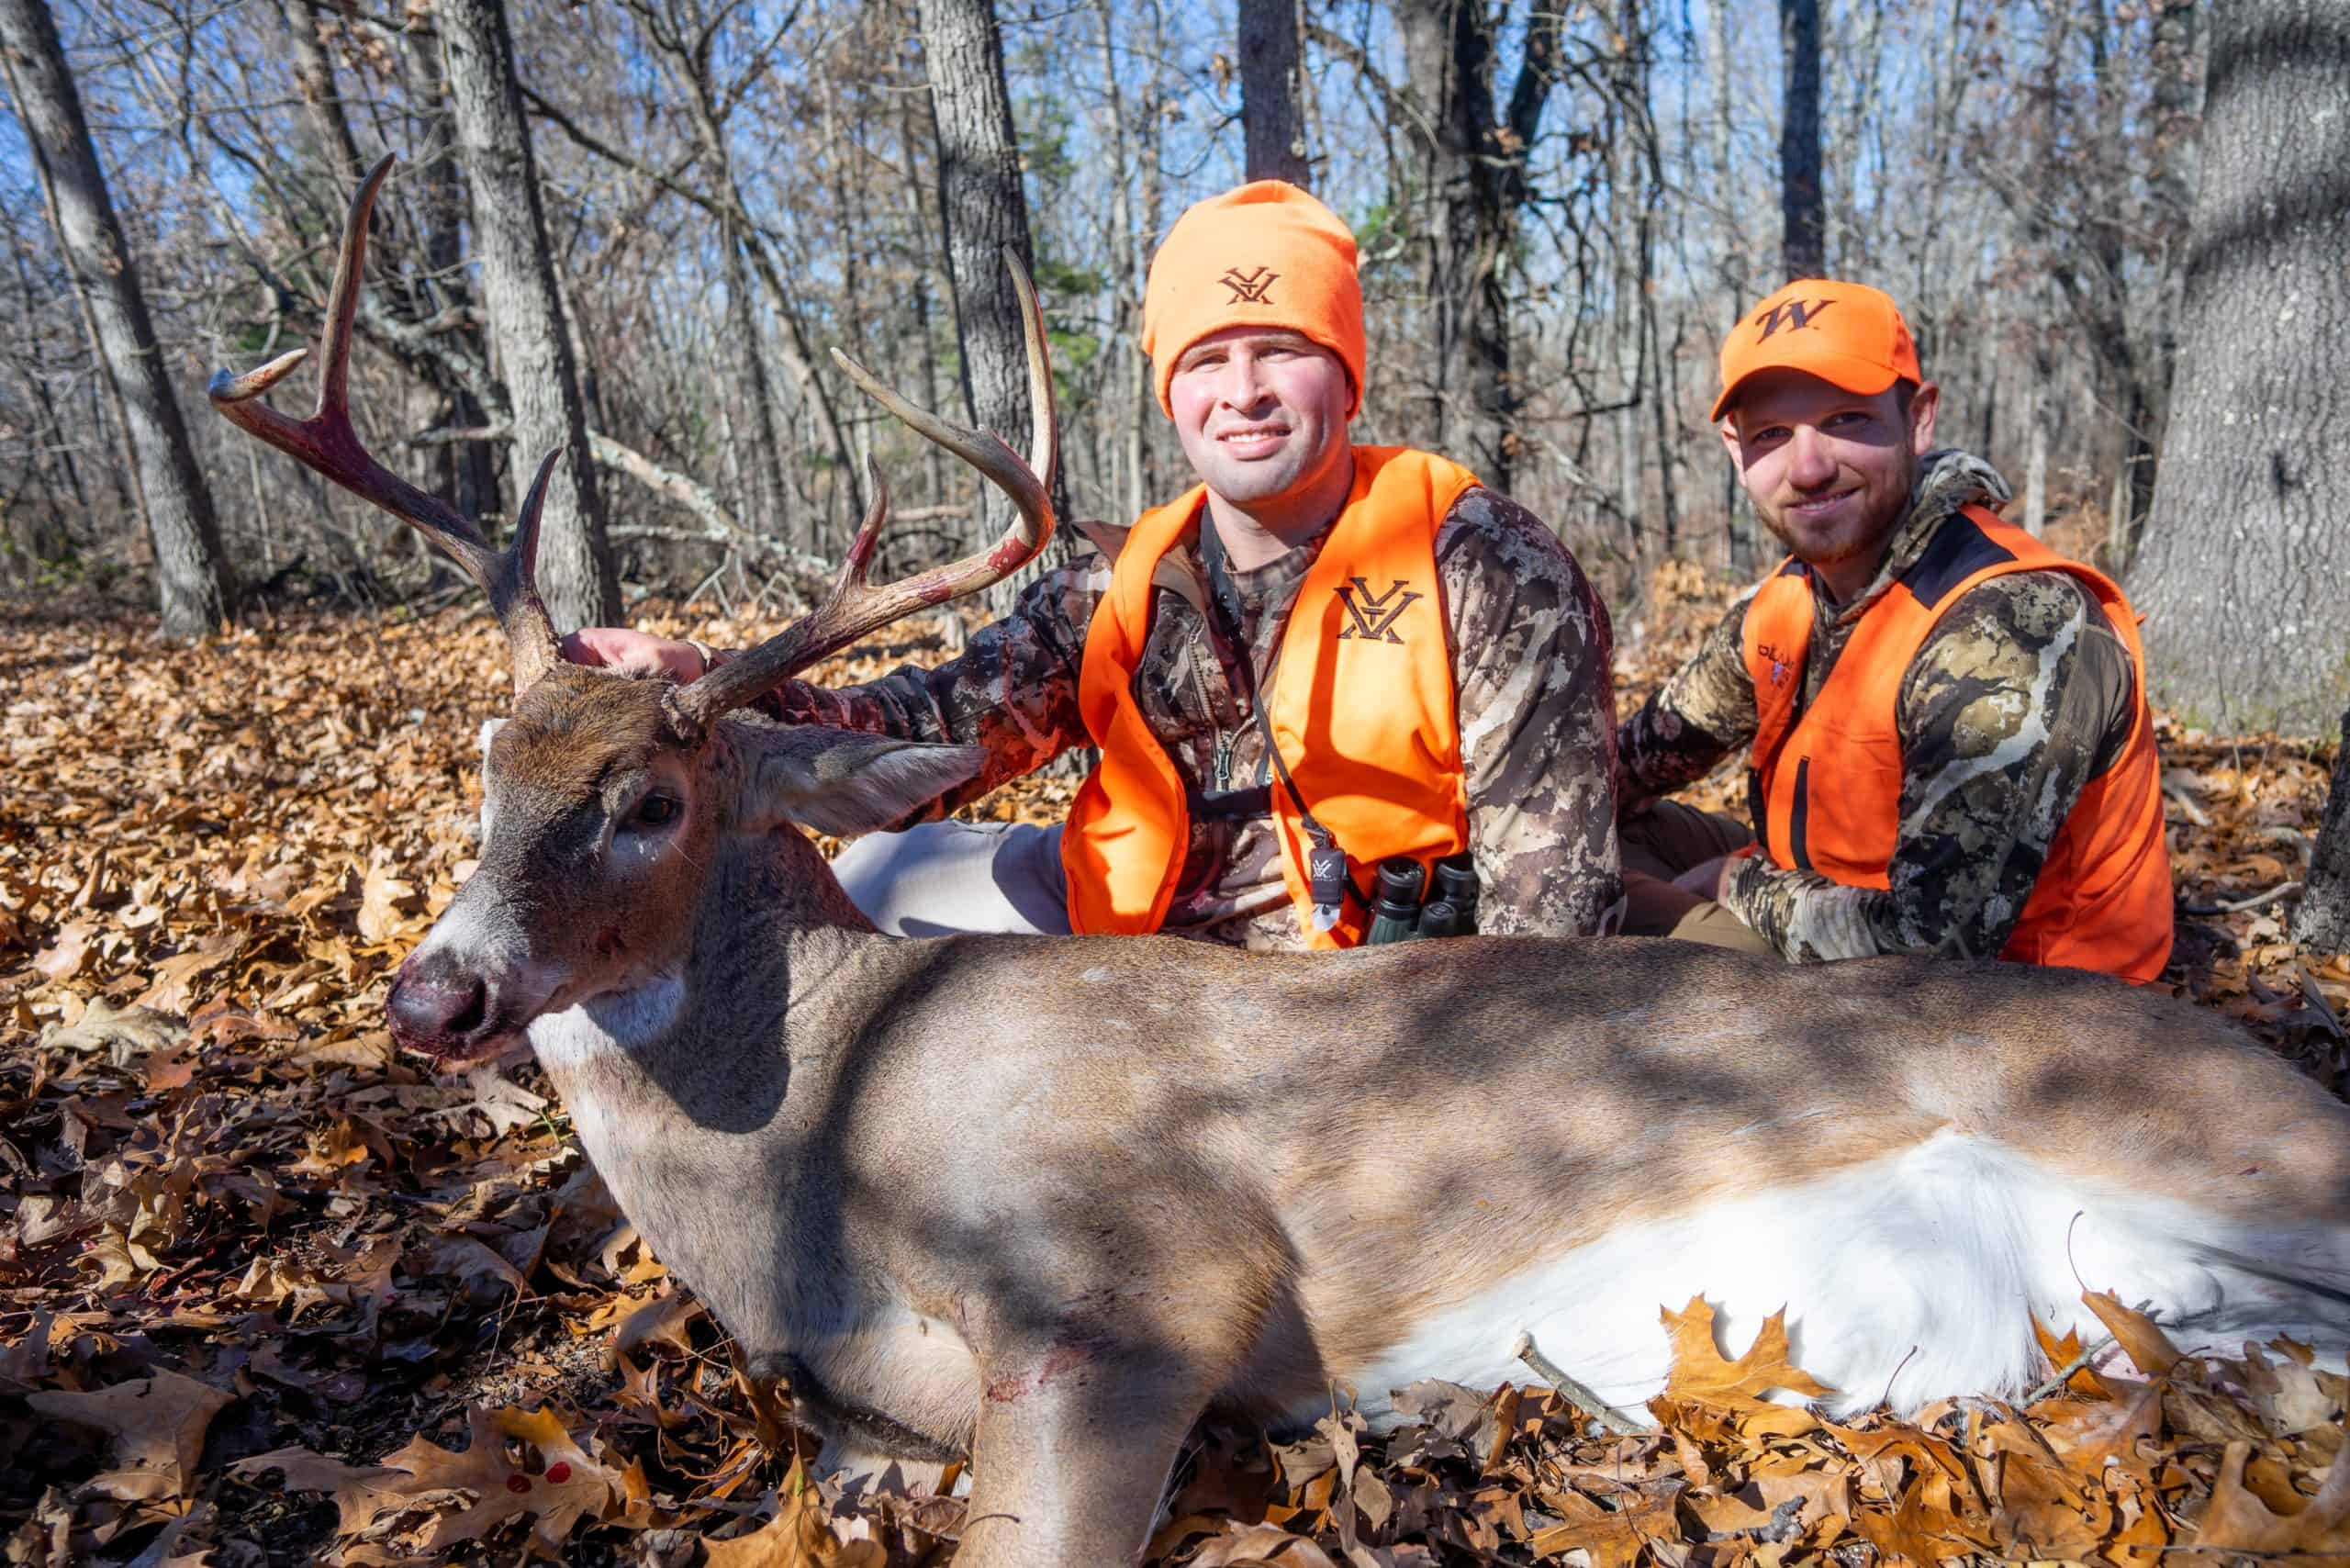 Two Cruising Bucks Hit the Dirt